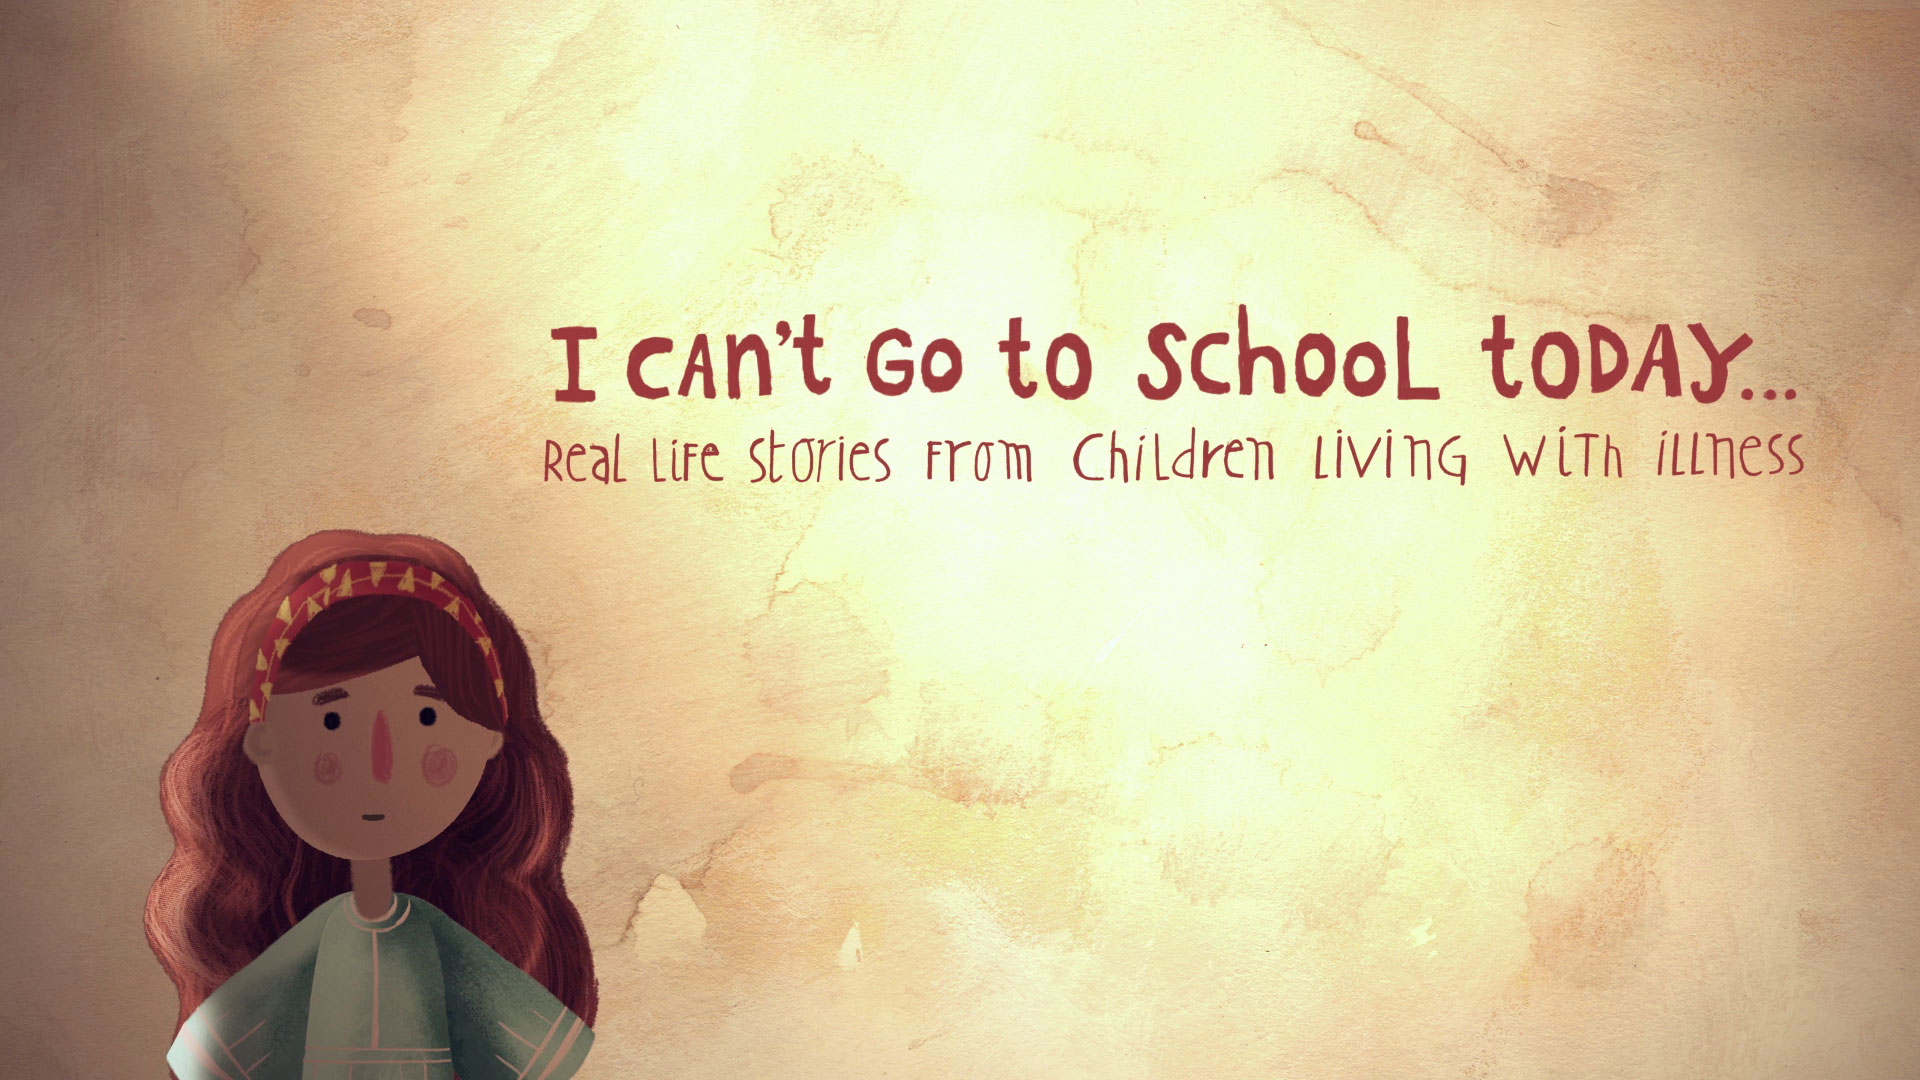 BBC_I-Cant-go-to-school-today